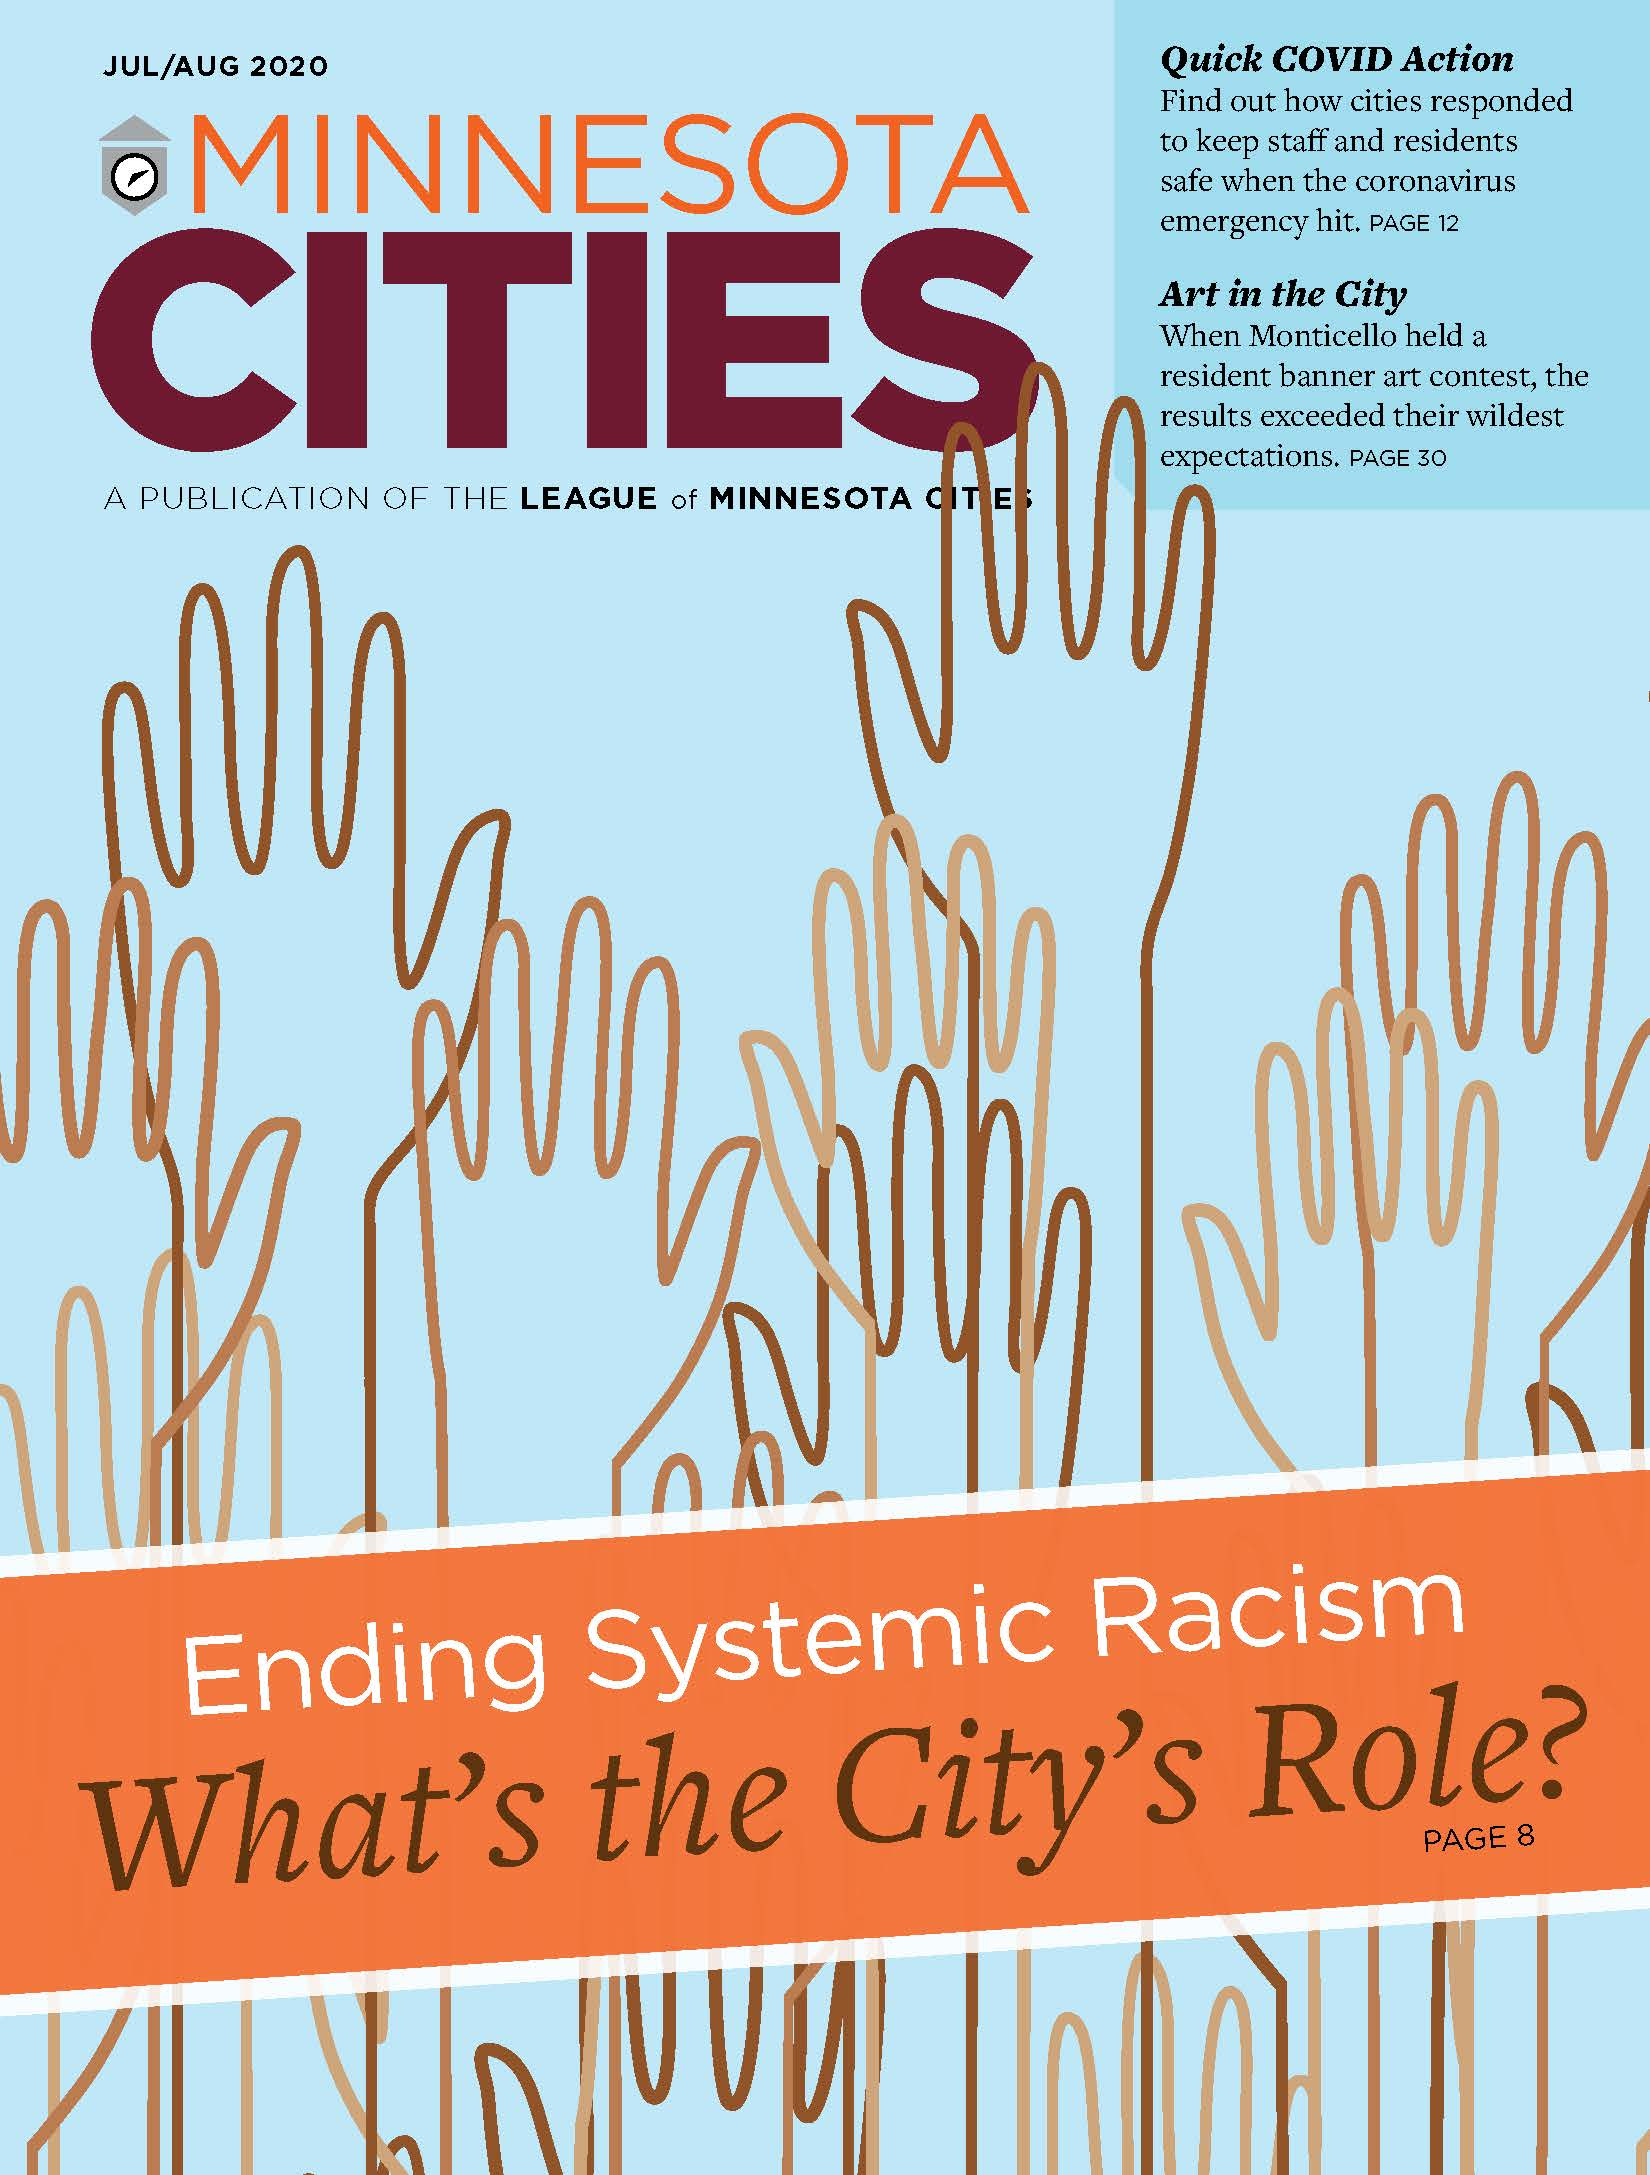 MN Cities magazine cover, Jul-Aug 2020, featuring a line drawing of a diversity of raised hands to illustrate a desire to end systemic racism. Text says: Ending Systemic Racism: What's the City's Role?